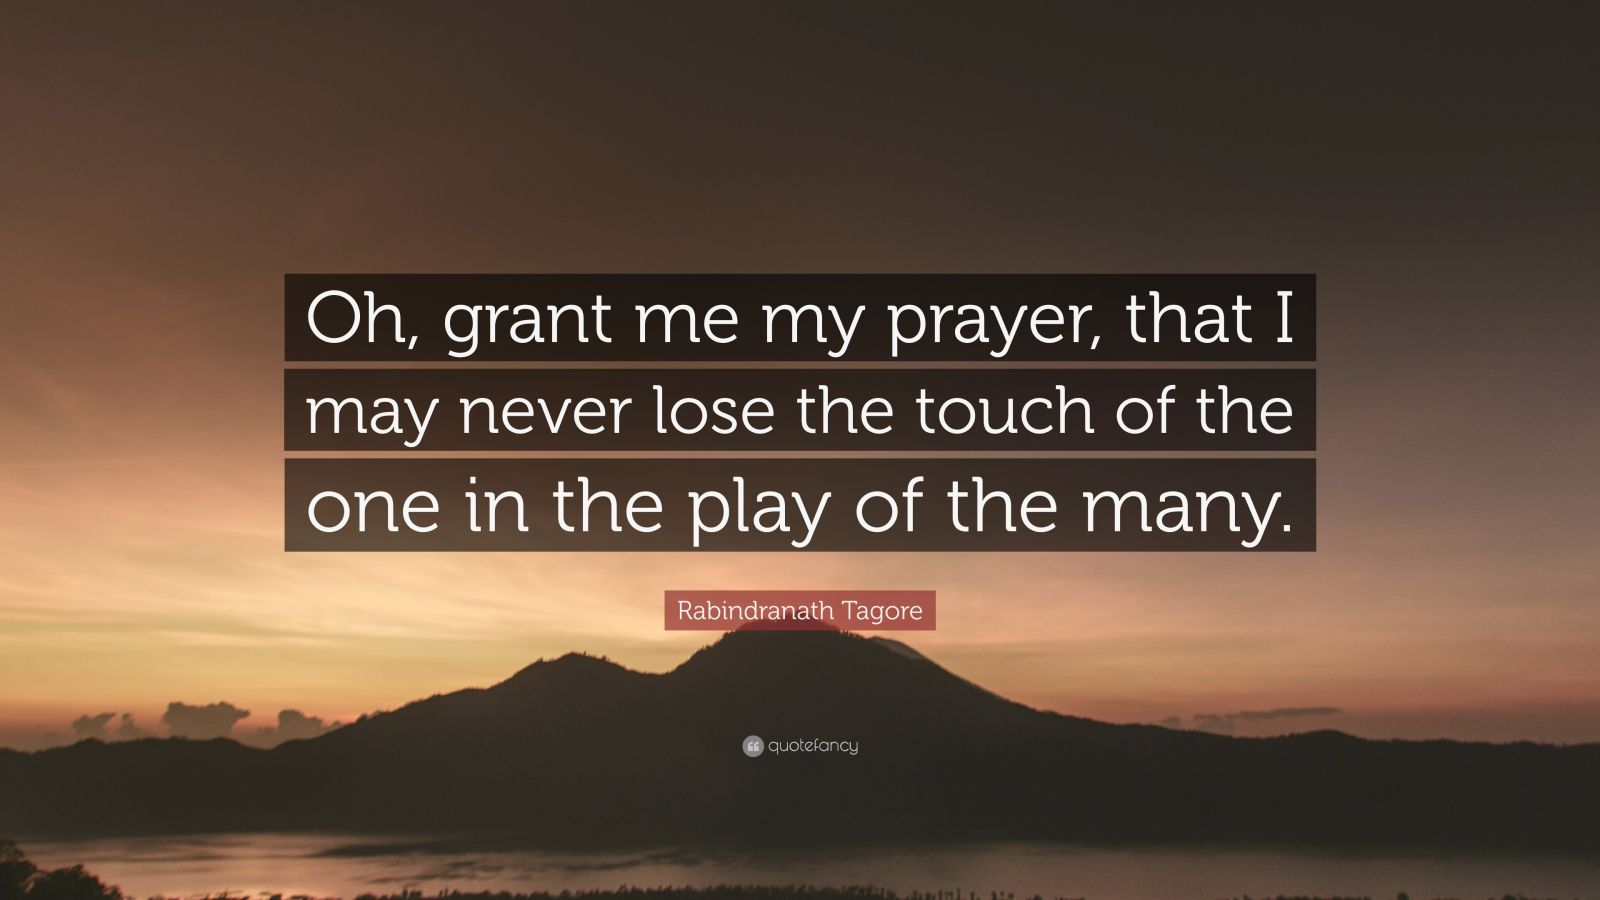 """Rabindranath Tagore Quote: """"Oh, grant me my prayer, that I may never lose the touch of the one in the play of the many."""""""